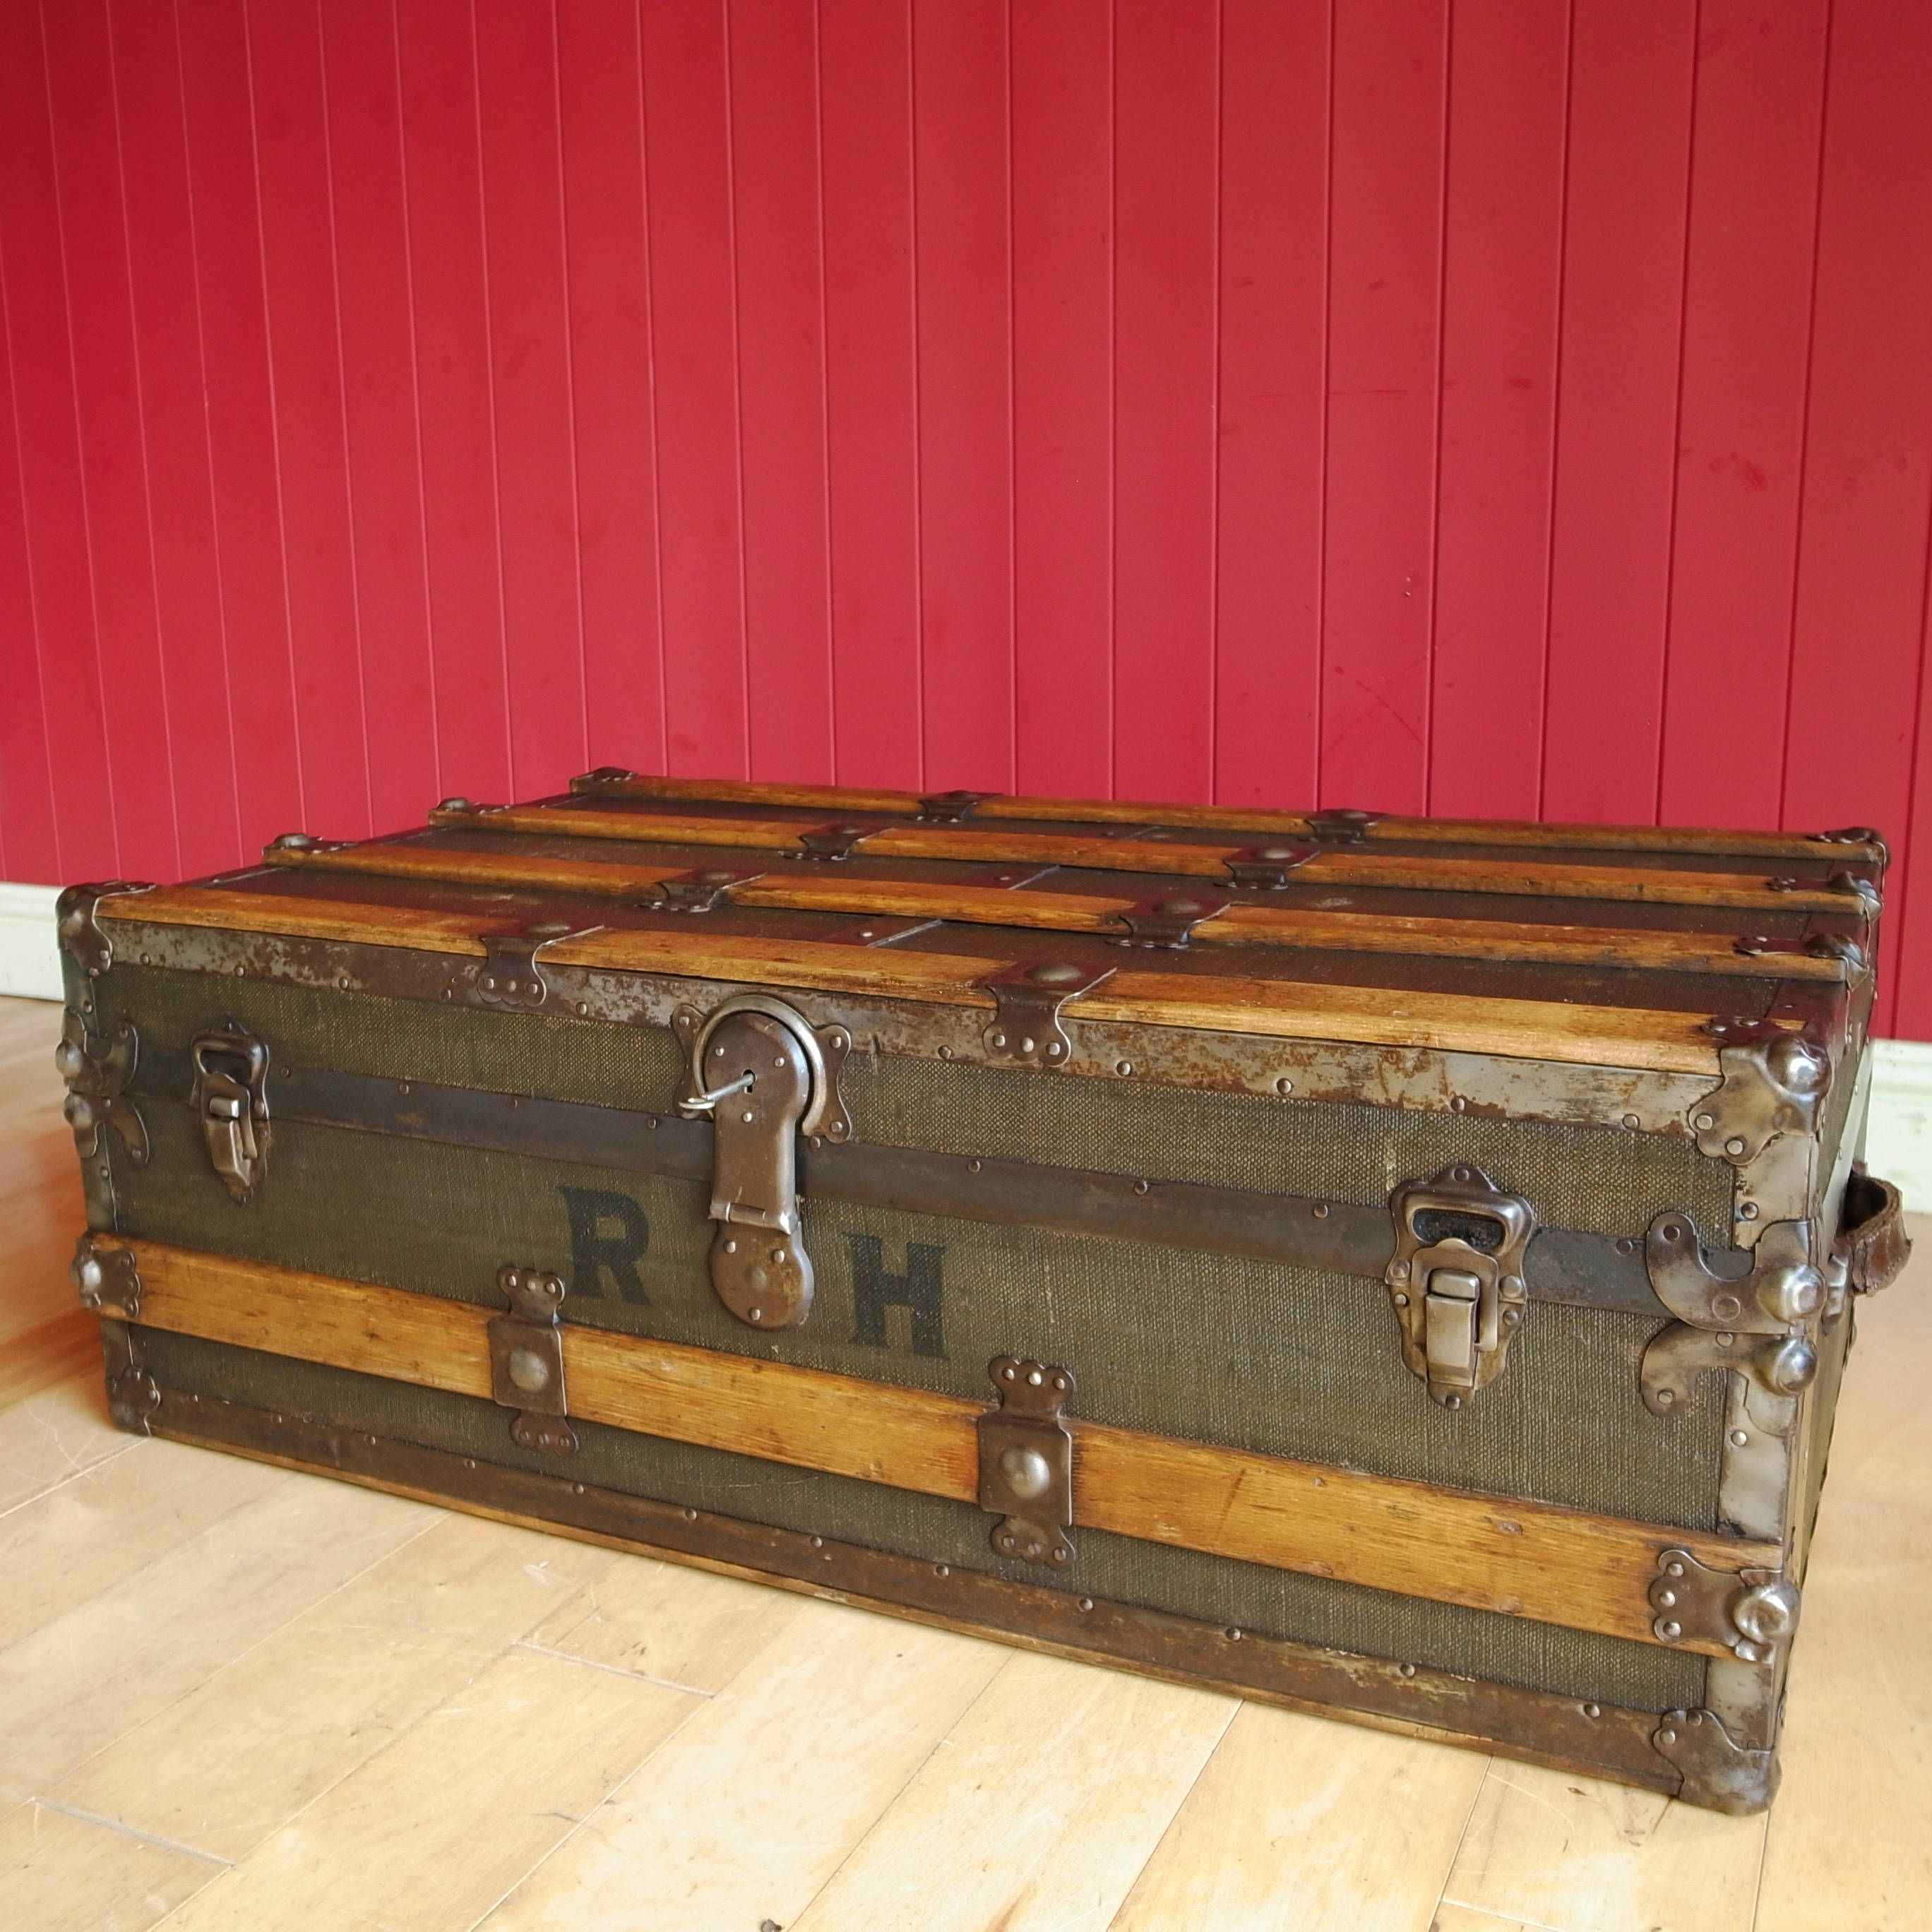 Excited To Share The Latest Addition To My Shop Vintage Steamer Trunk Coffee Table Storage Che Vintage Trunks Vintage Steamer Trunk Steamer Trunk Coffee Table